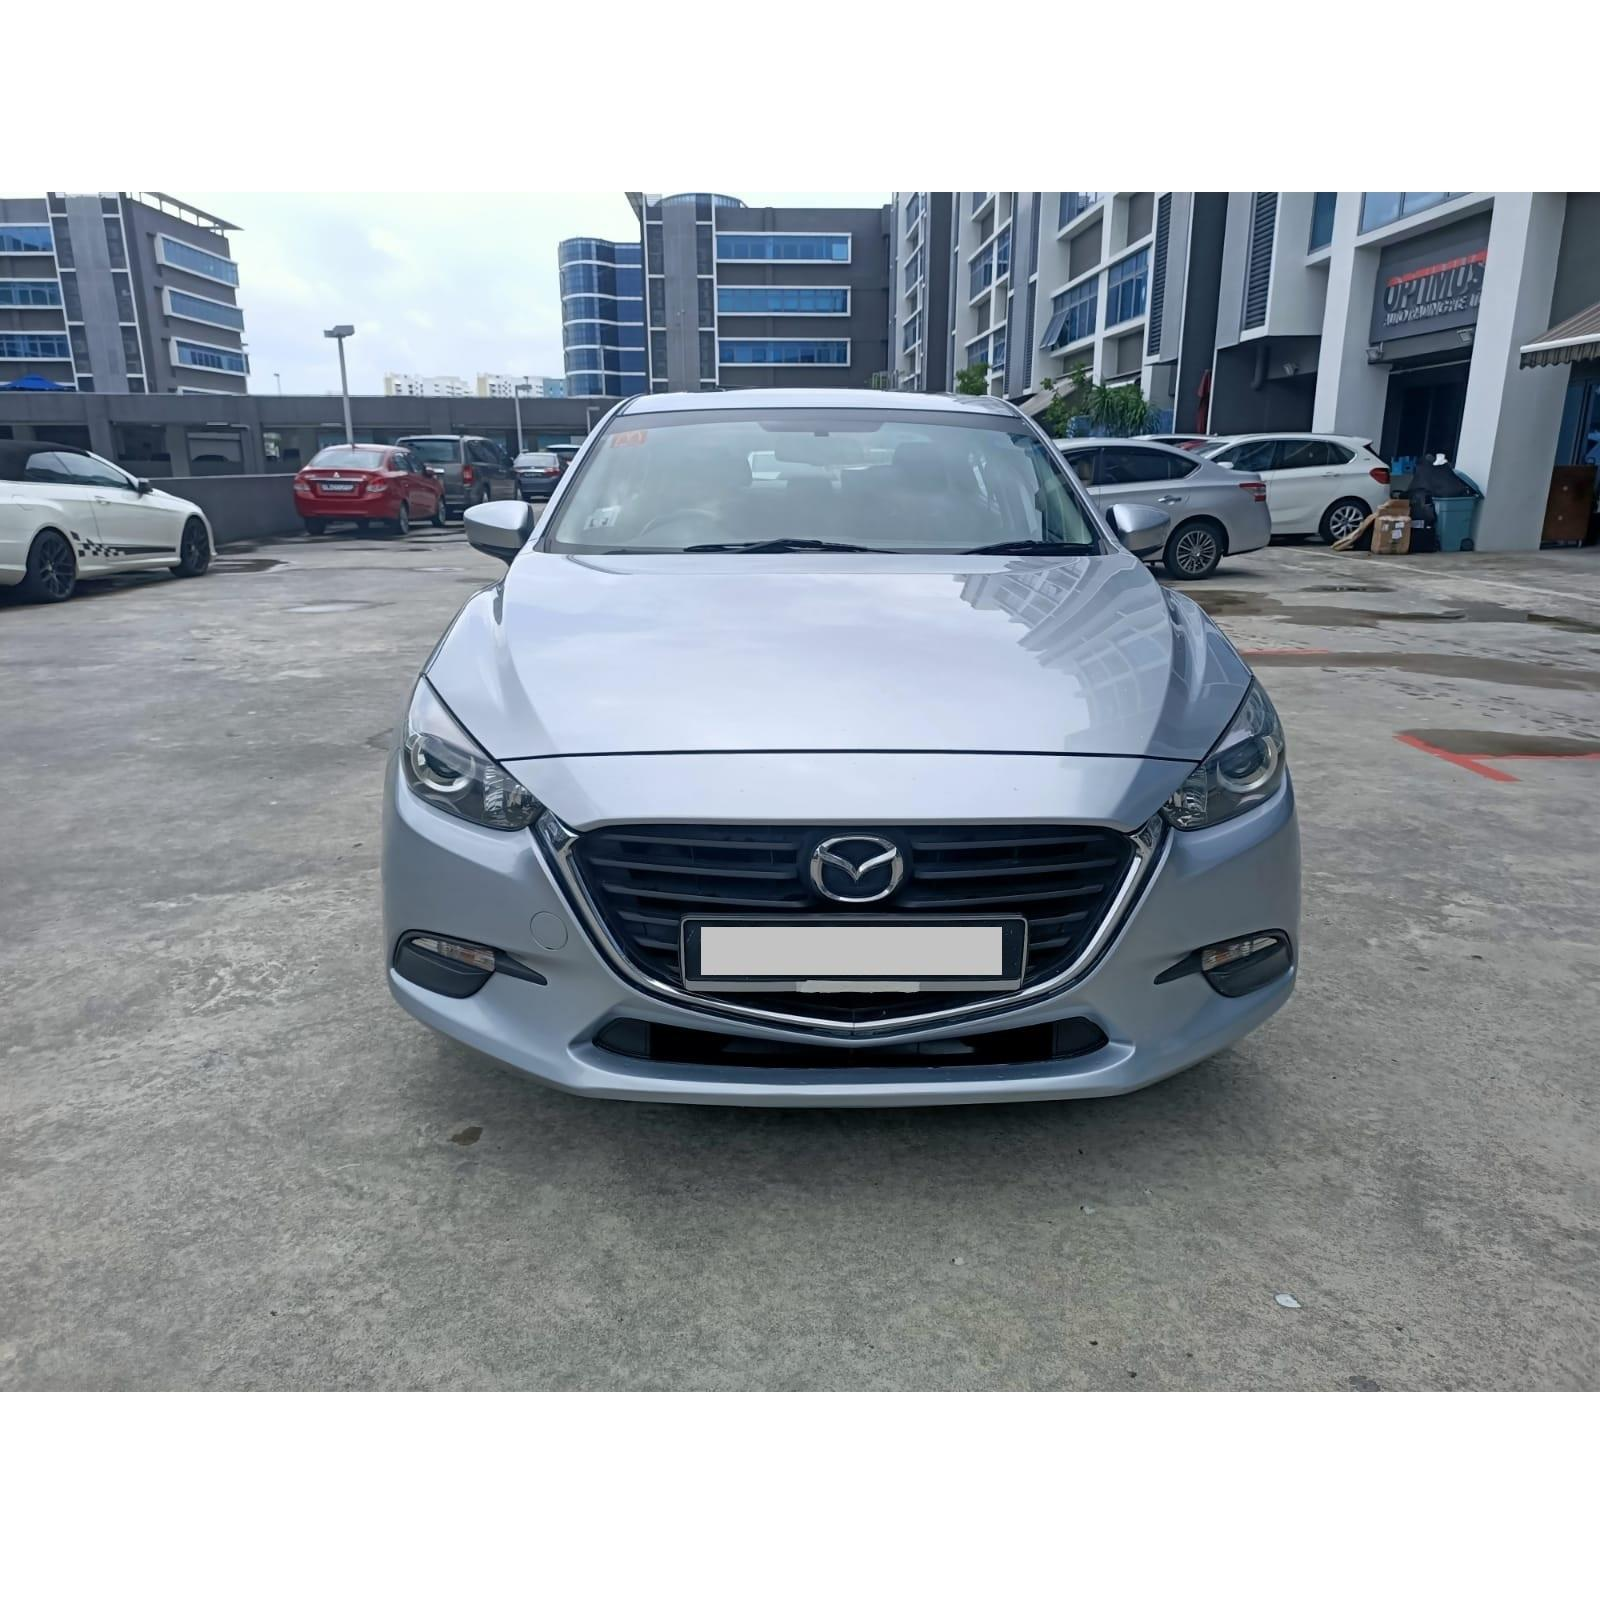 High Quality Automatic Used Car MAZDA 3 Best Price With Mileage 28500km From Singapore